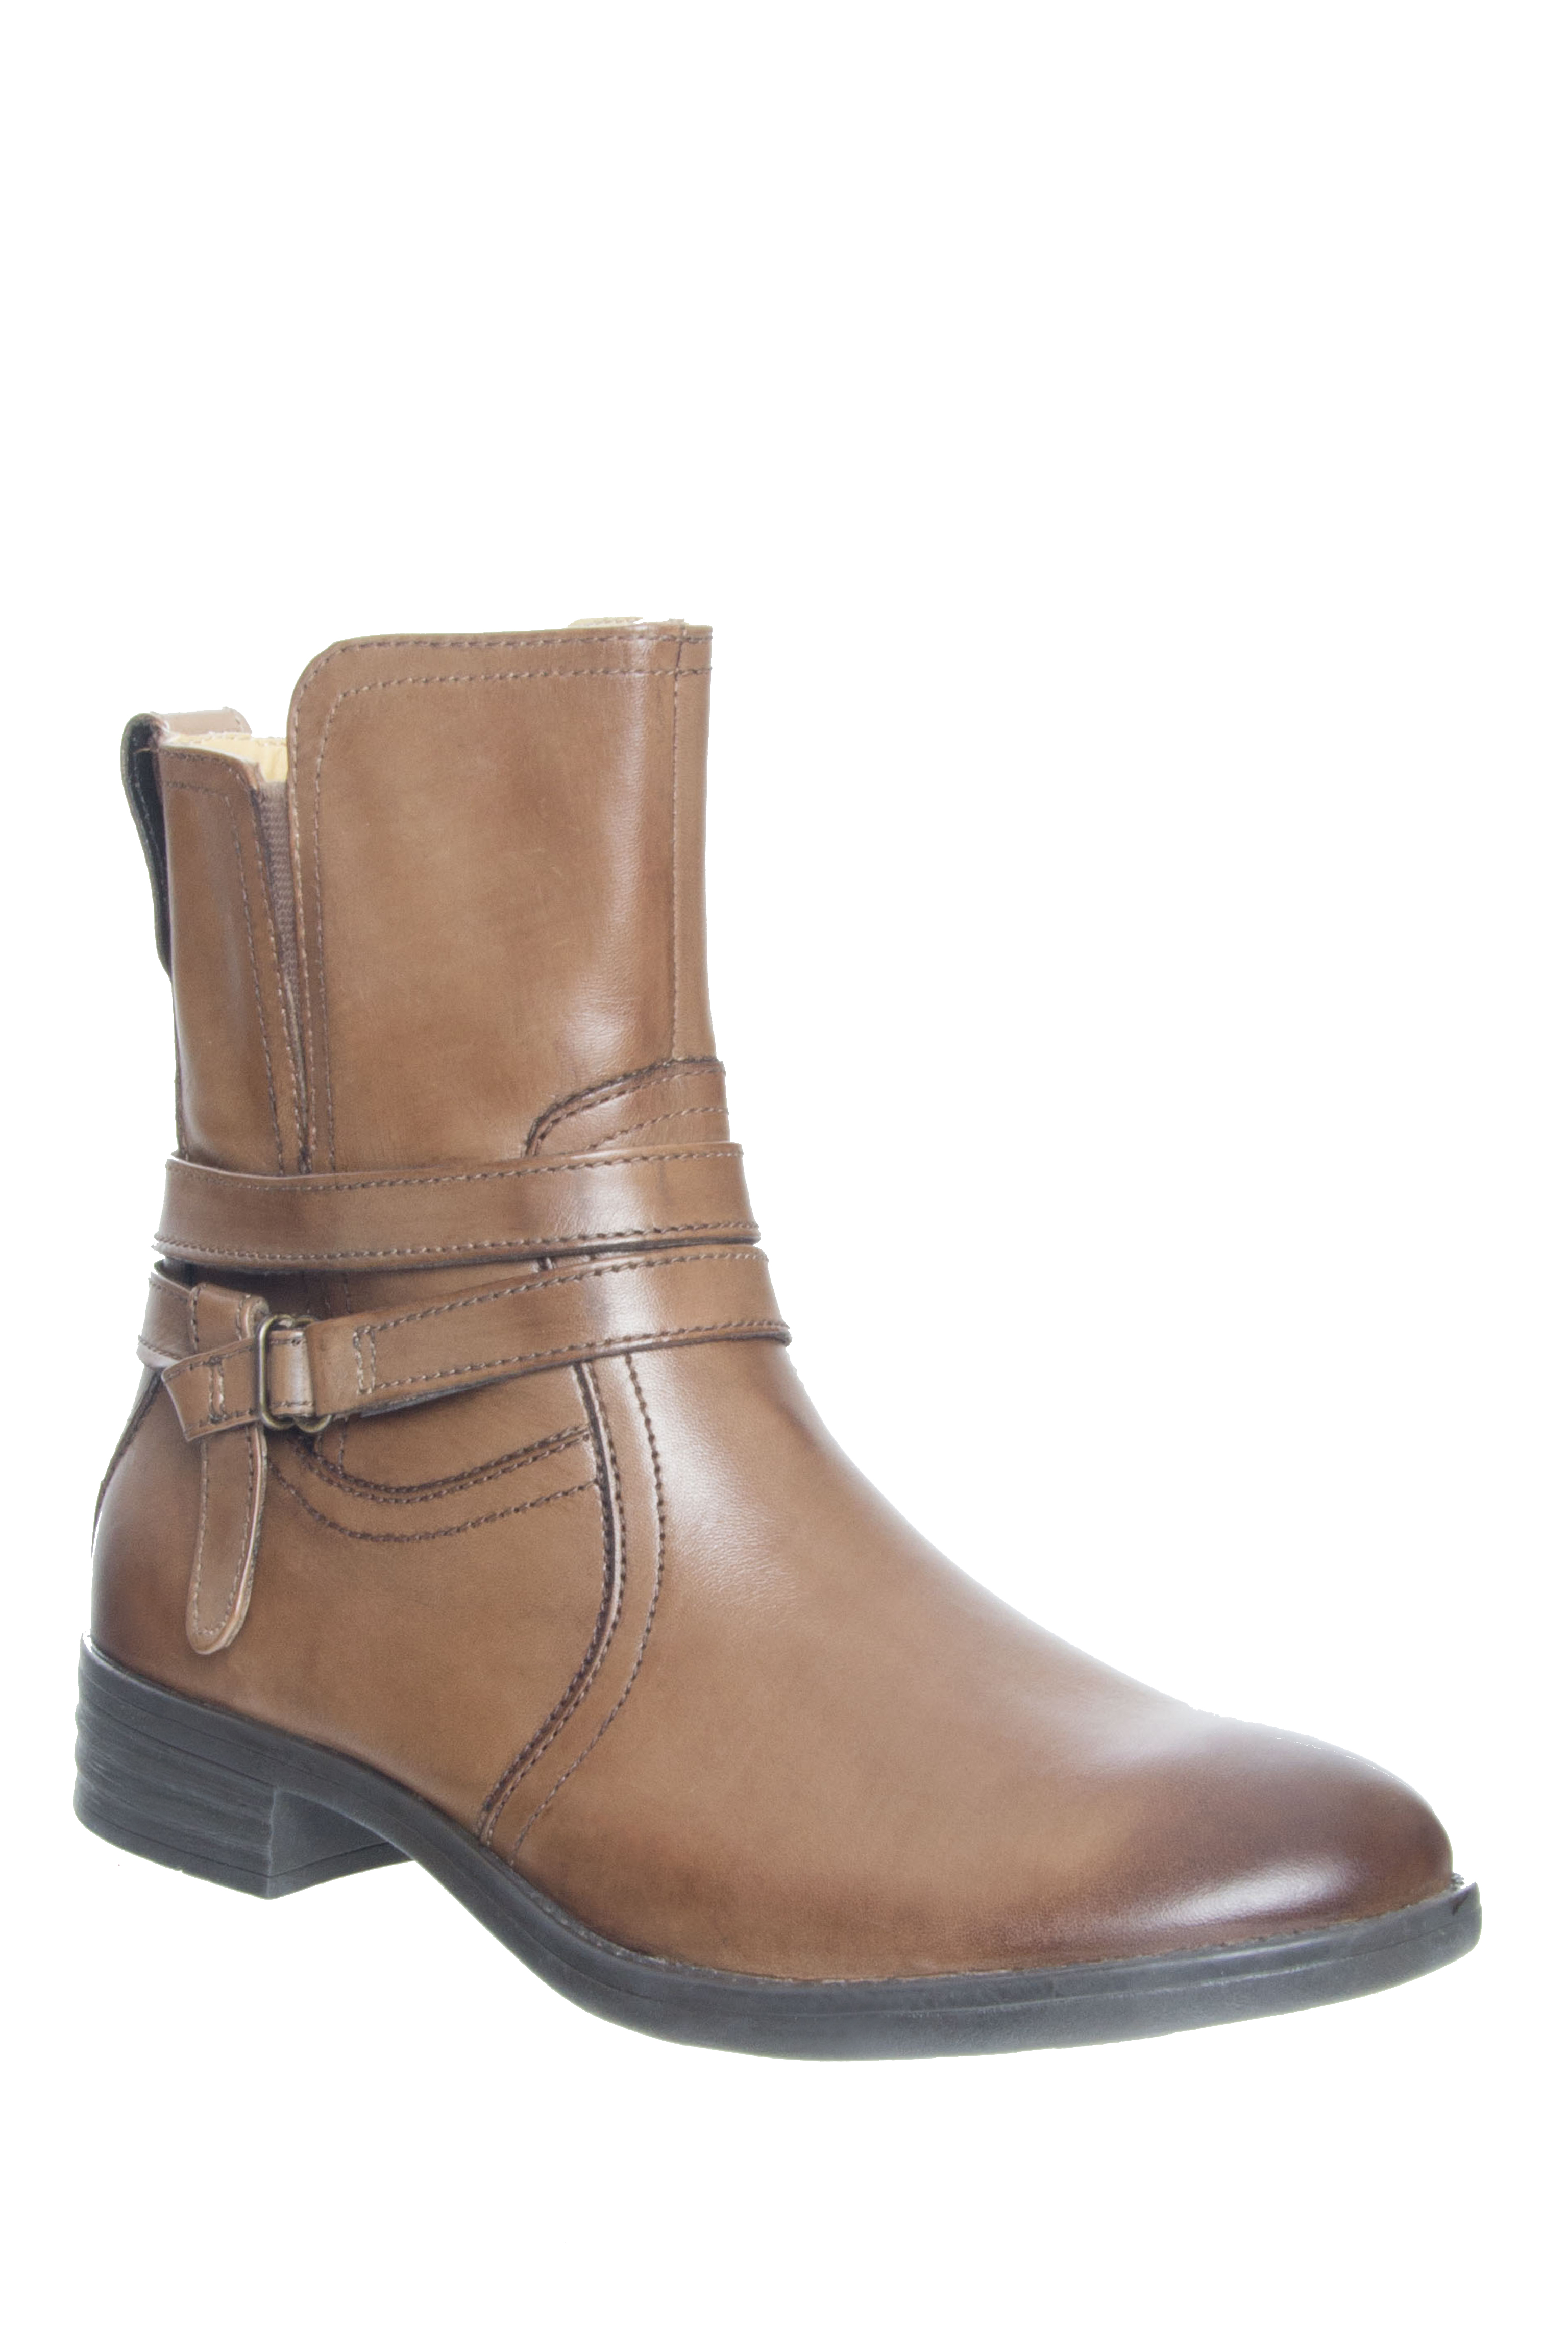 Bussola Tania Low Heel Boots - Fossil